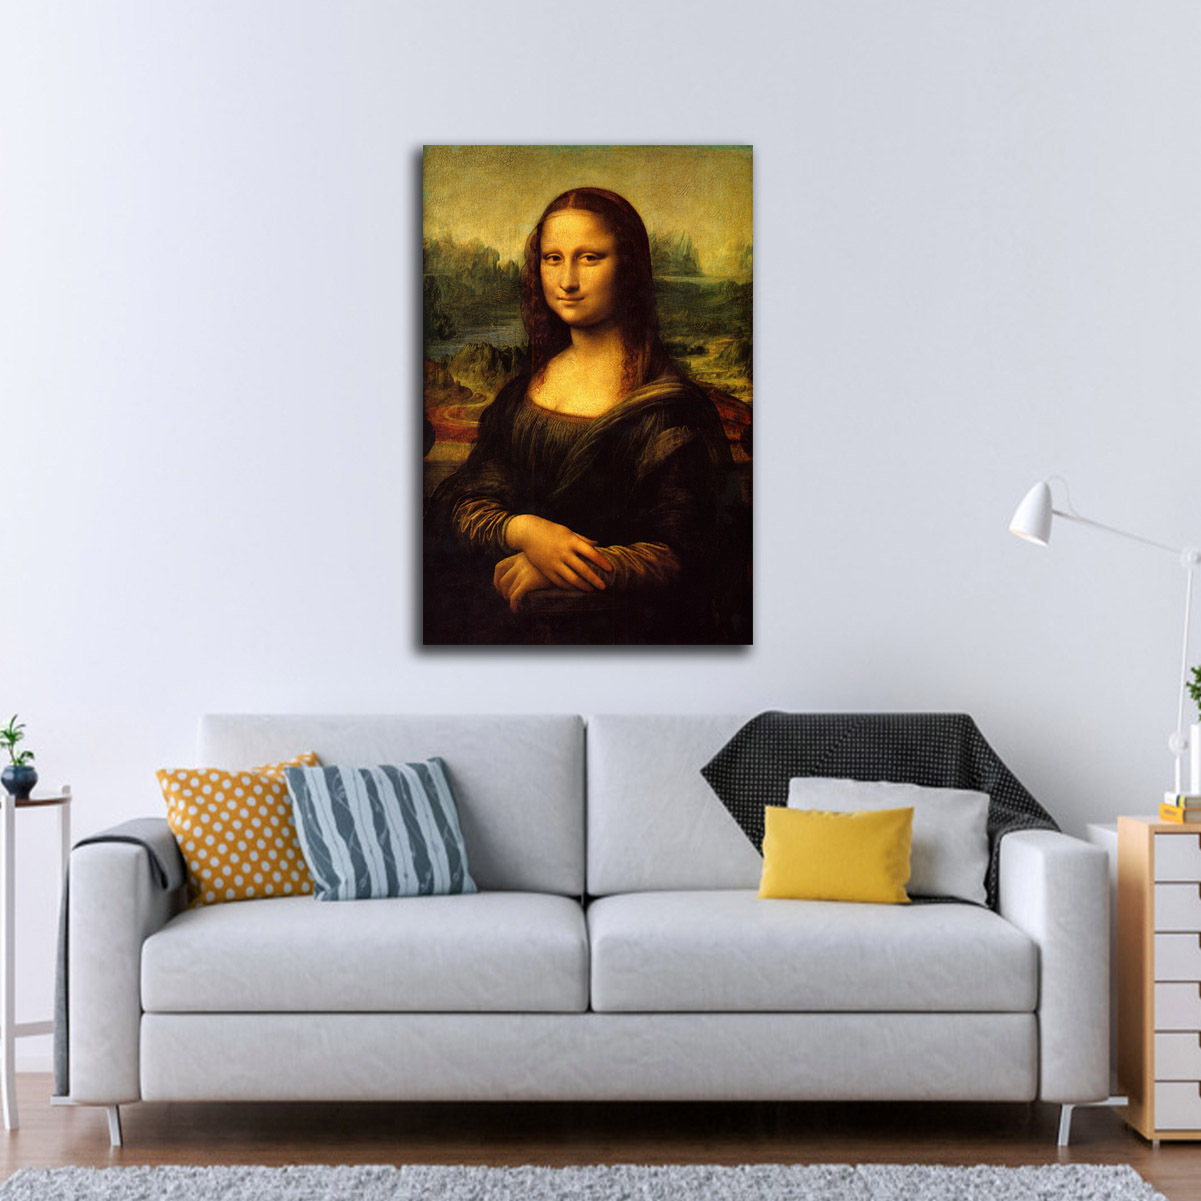 Mona Lisa Wall Hanging Art Oil Painting Canvas Painting Home Decoration Modern Spray Painting Kitchen Decor Posters Paris Art